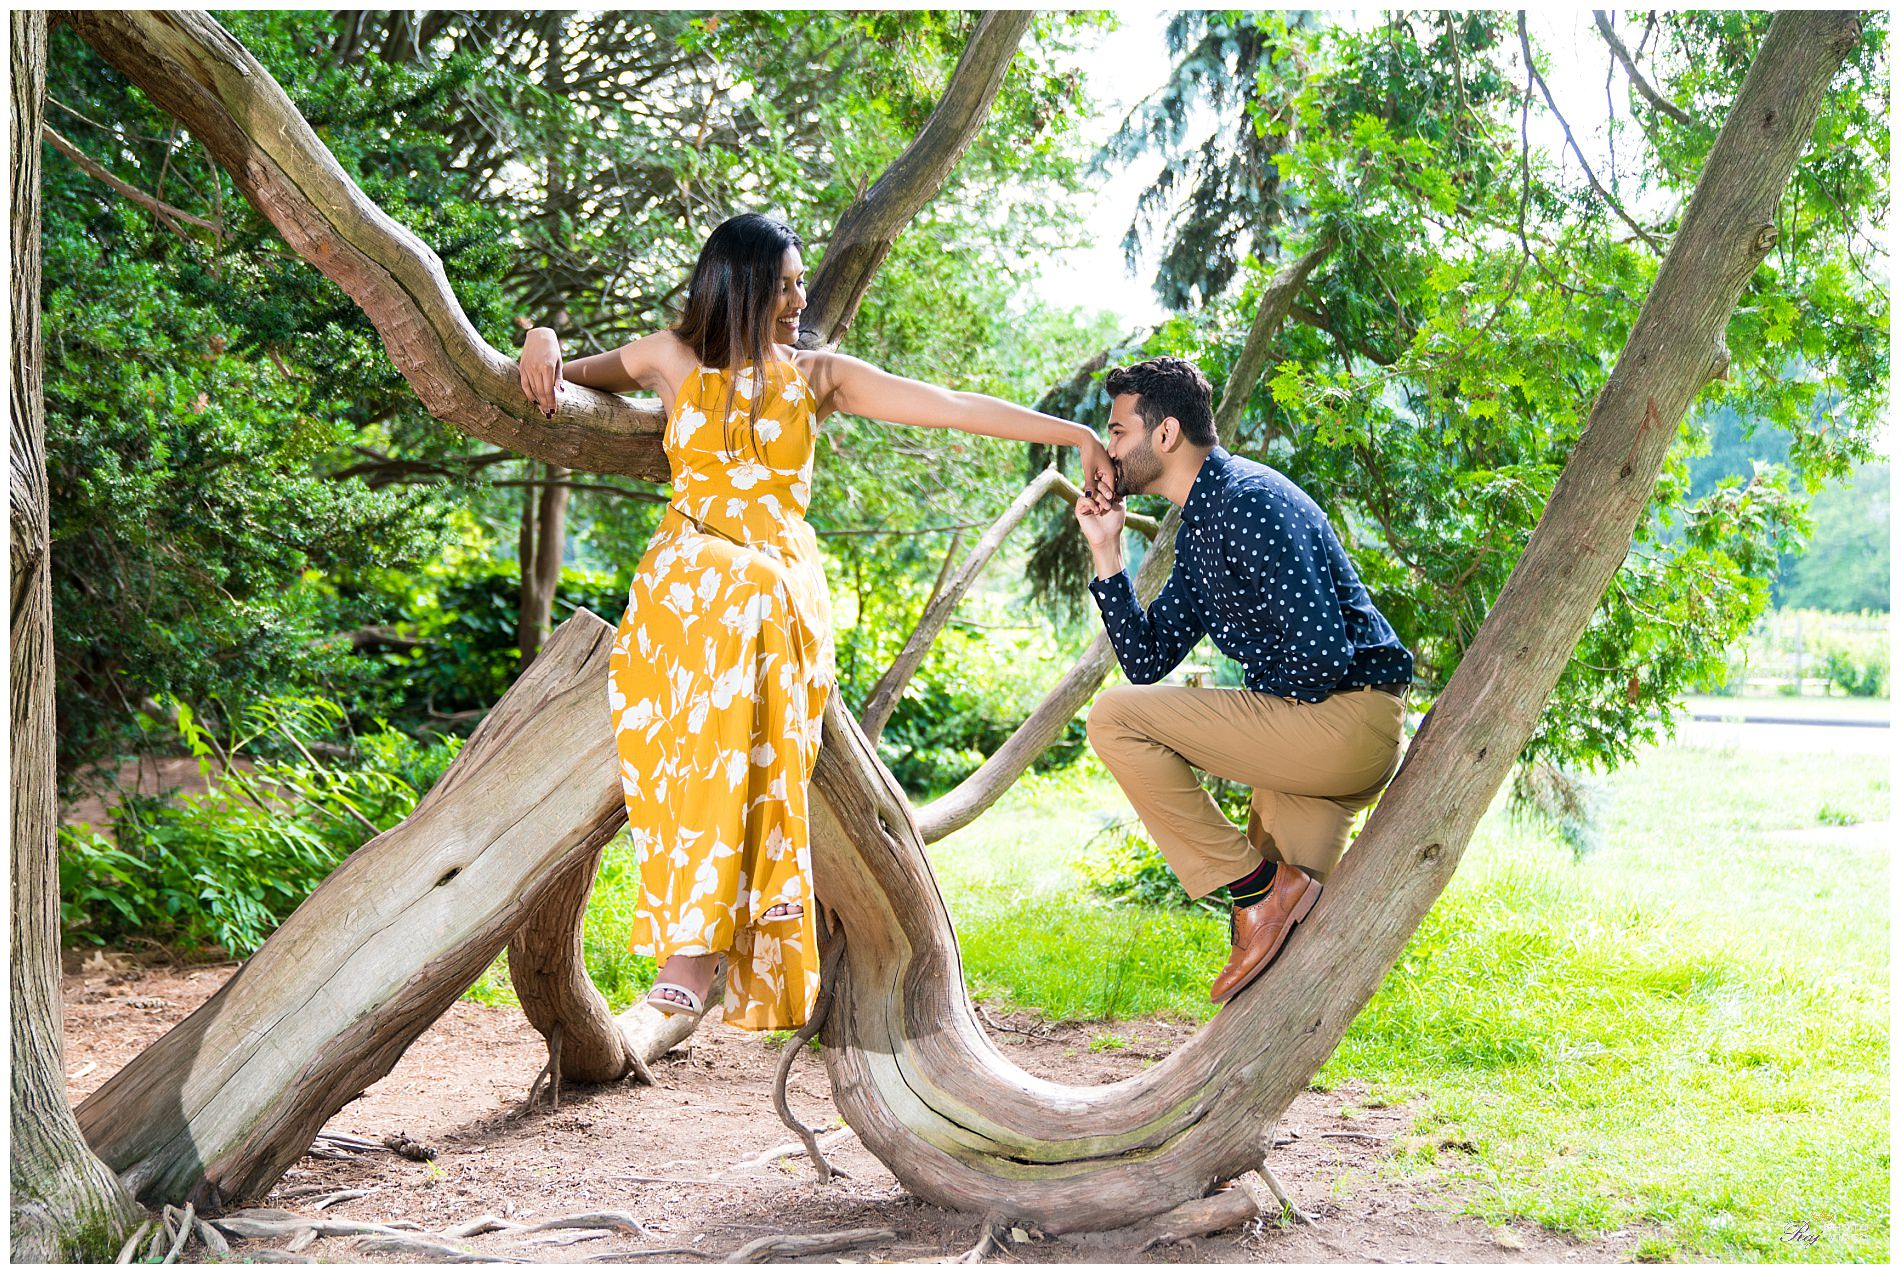 Elizabeth-Park-Rose-Garden-Hartford-CT-Engagement-Shoot-Pratiti-Suraj-24.jpg